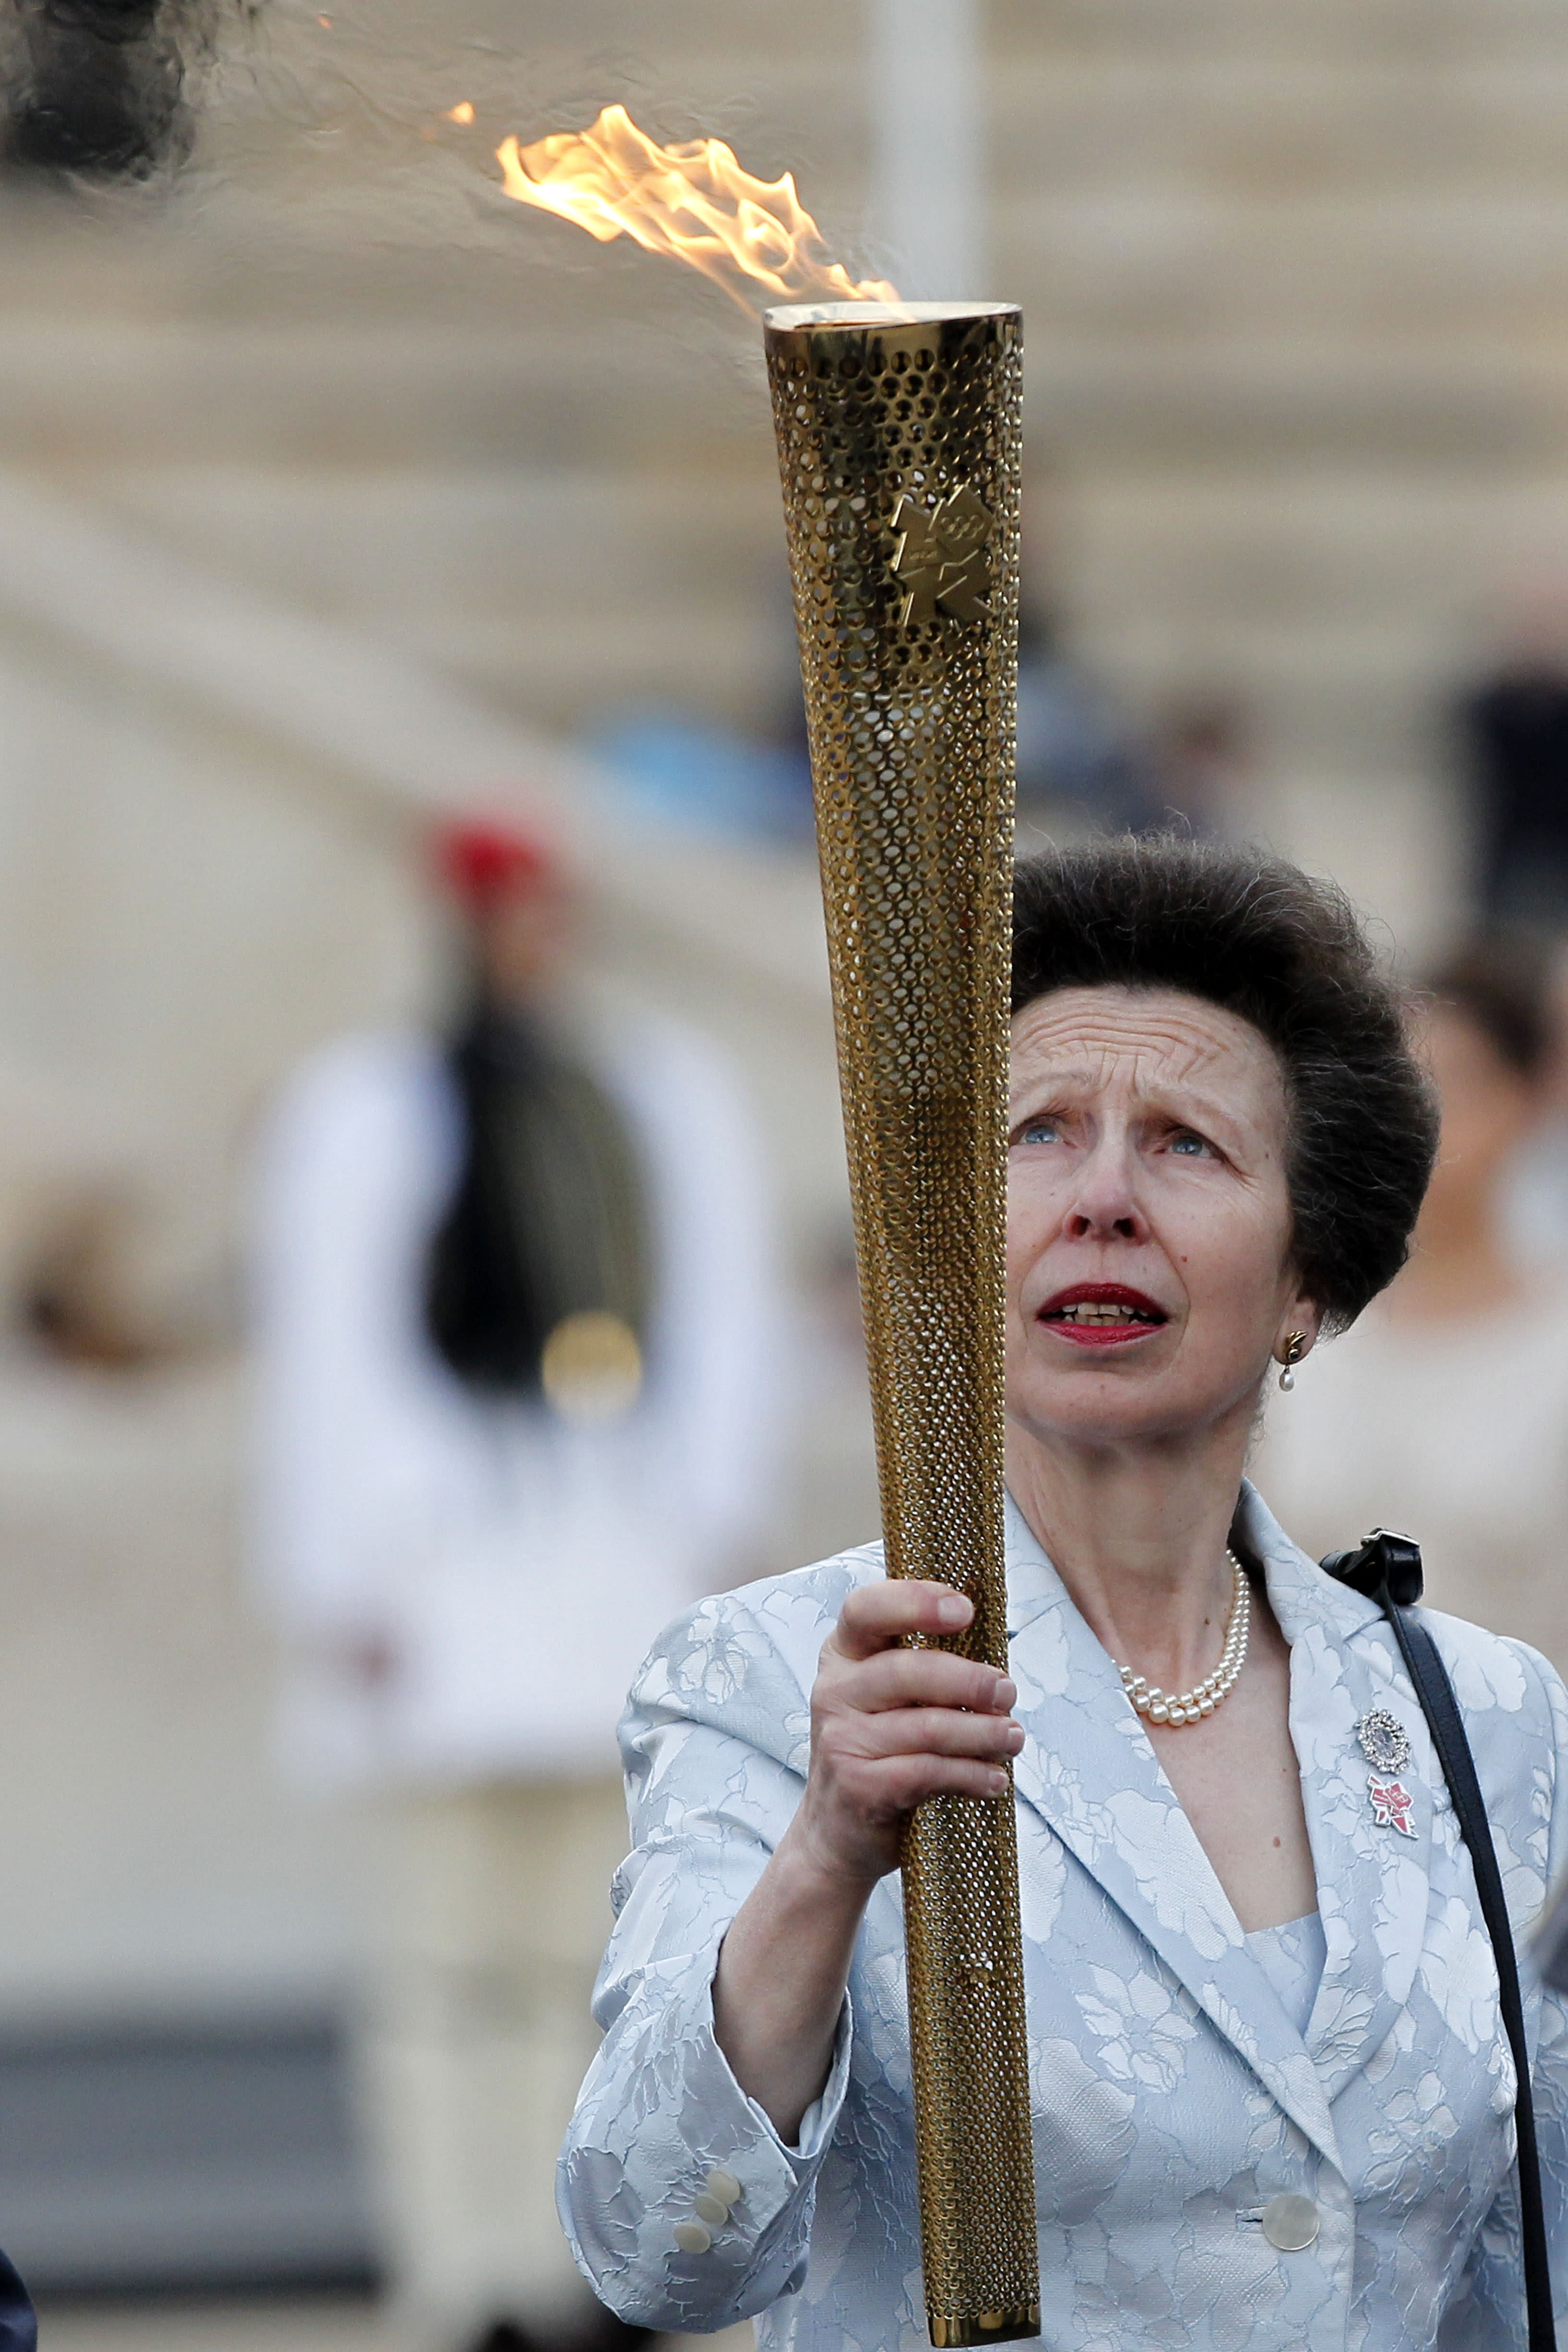 FILE - In this Thursday, May 17, 2012 file photo, Britain's Princess Anne holds the Olympic torch during the handover ceremony of the Olympic Flame in Panathenaic stadium in Athens. Queen Elizabeth II's only daughter, Princess Anne, will be celebrating her 70th birthday on Saturday, Aug. 15, 2020 in a no-nonsense manner that befits her reputation in Britain. Whatever is planned for Saturday, it's certainly going to be a scaled-back affair because of the coronavirus pandemic. (AP Photo/Petros Giannakouris, File)